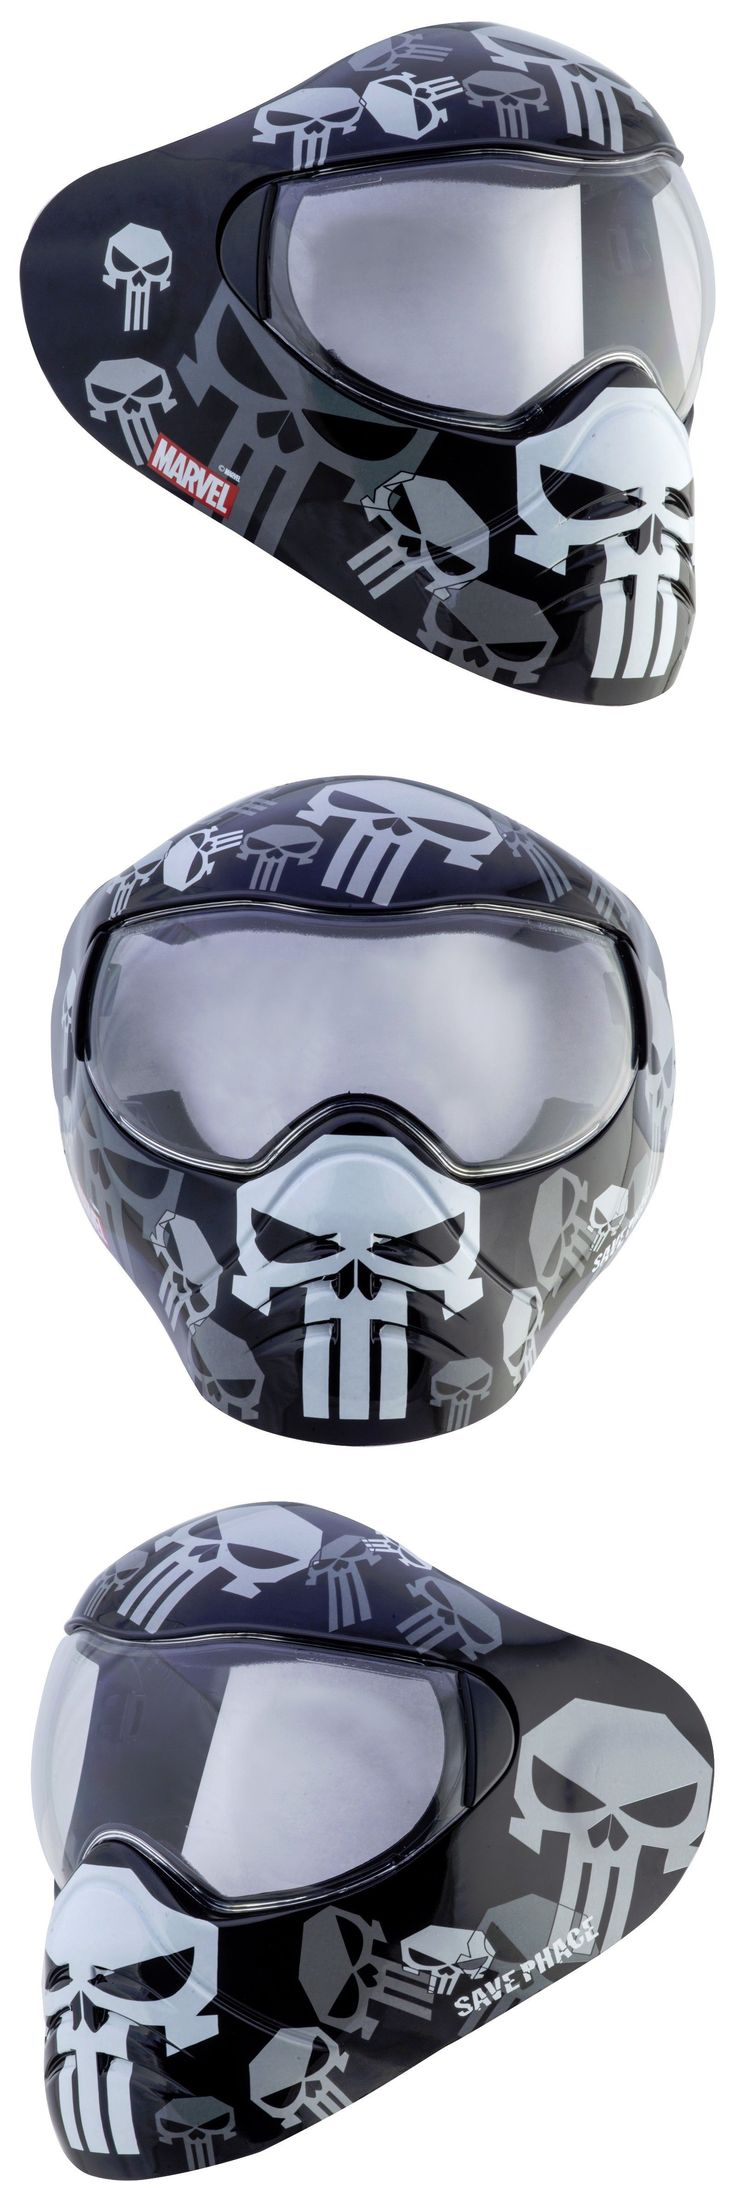 Hats and Helmets 159148: New Save Phace Marvel Avengers Series Sum2 Sports Utility Goggles Mask Punisher BUY IT NOW ONLY: $83.49